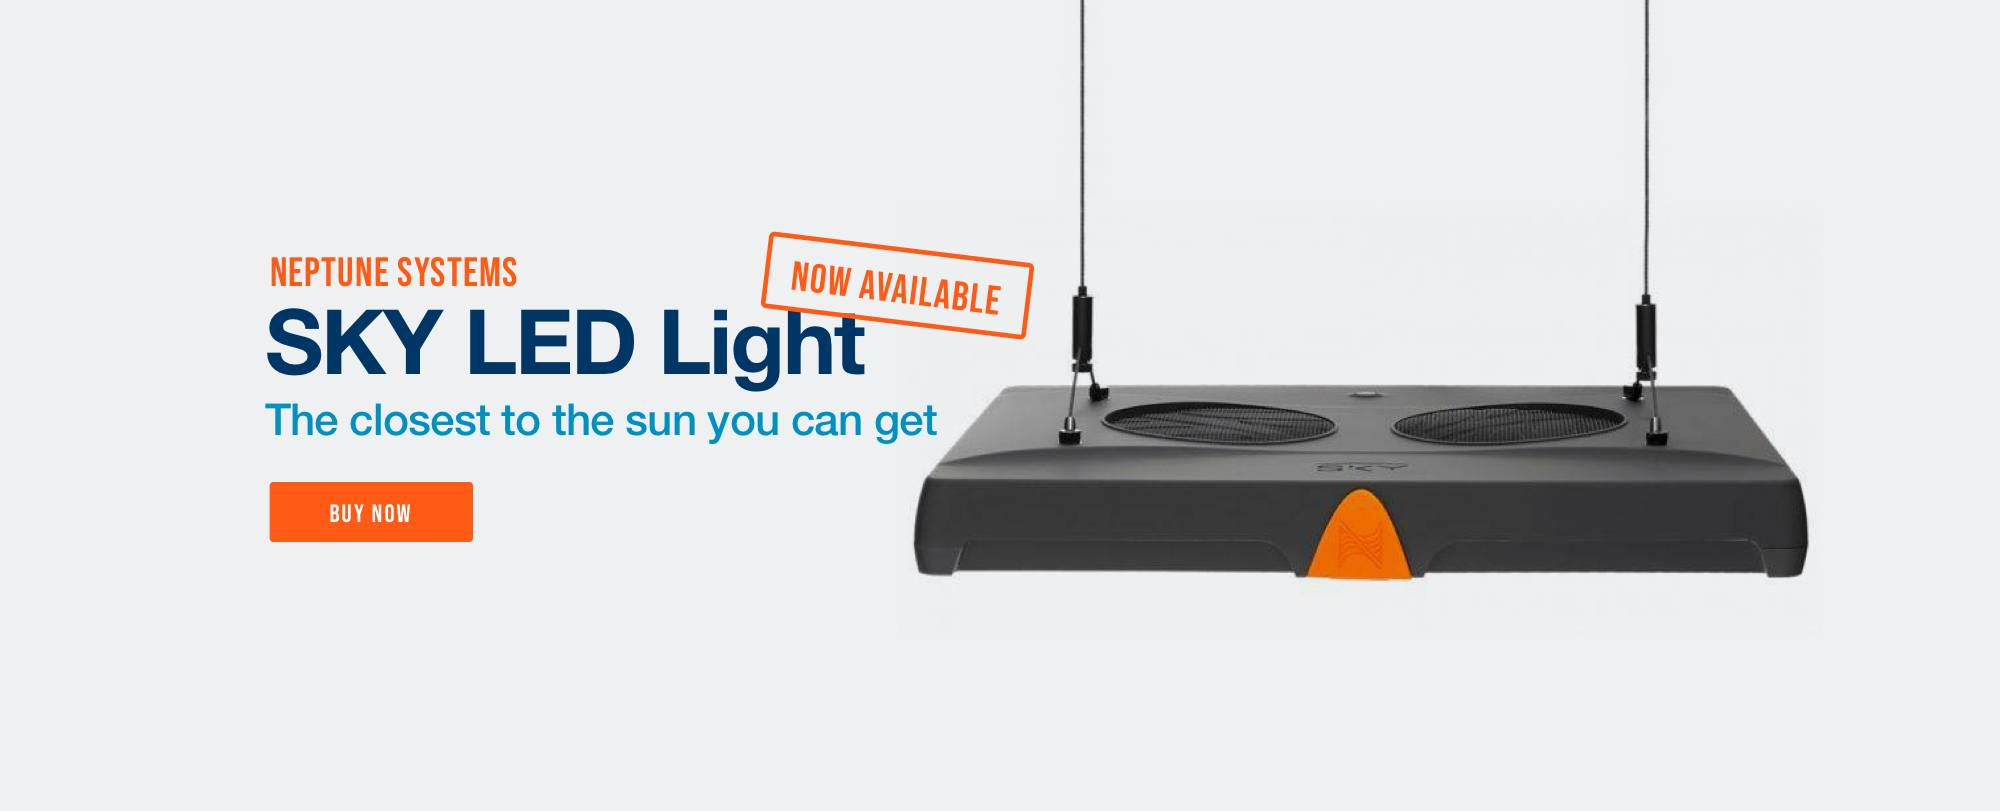 Neptune Systems SKY LED Light - Now Available